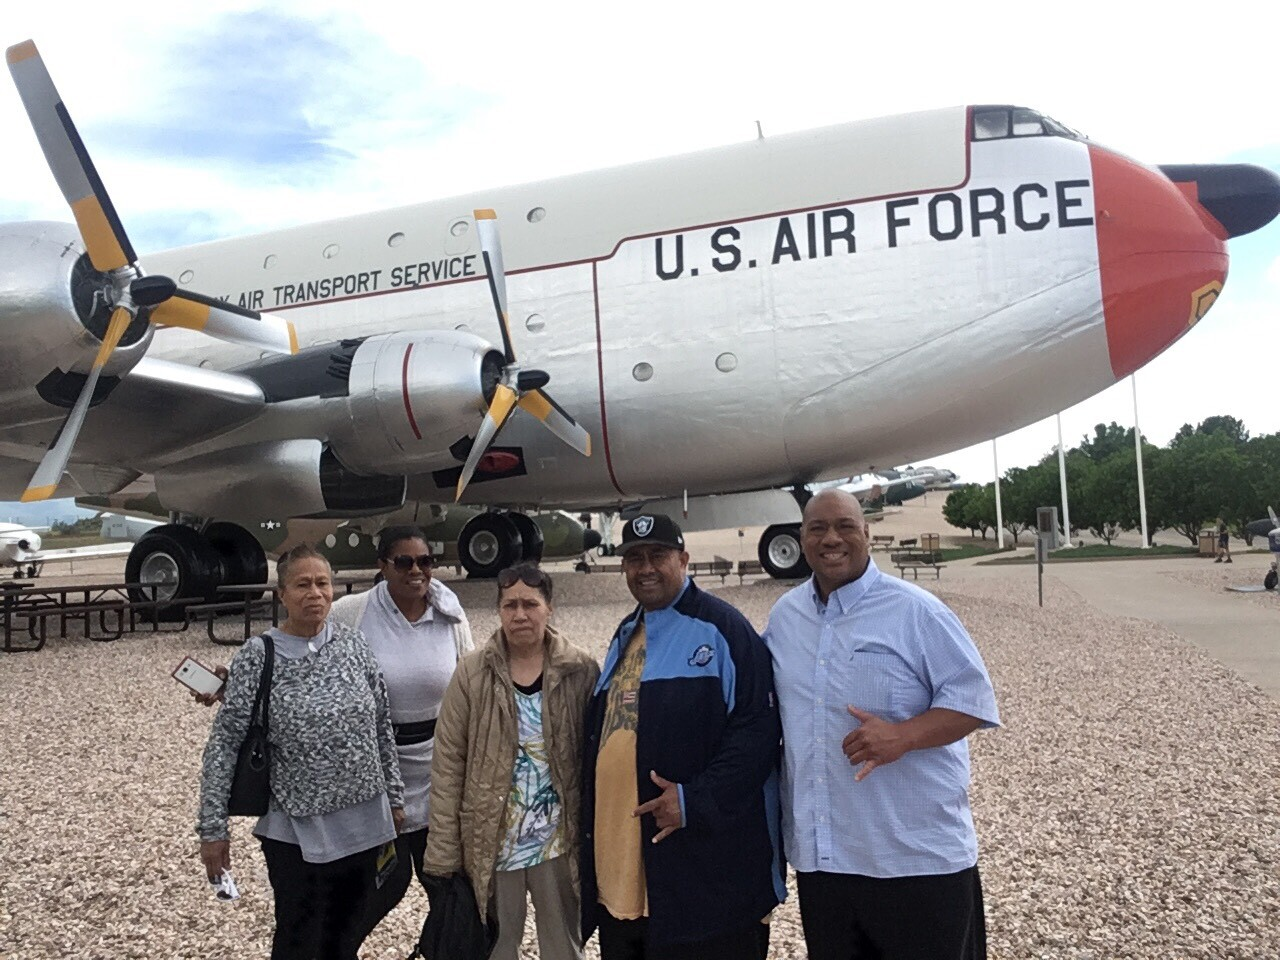 Photos: Big Budah's blog: Reuniting with family and honoring those who served